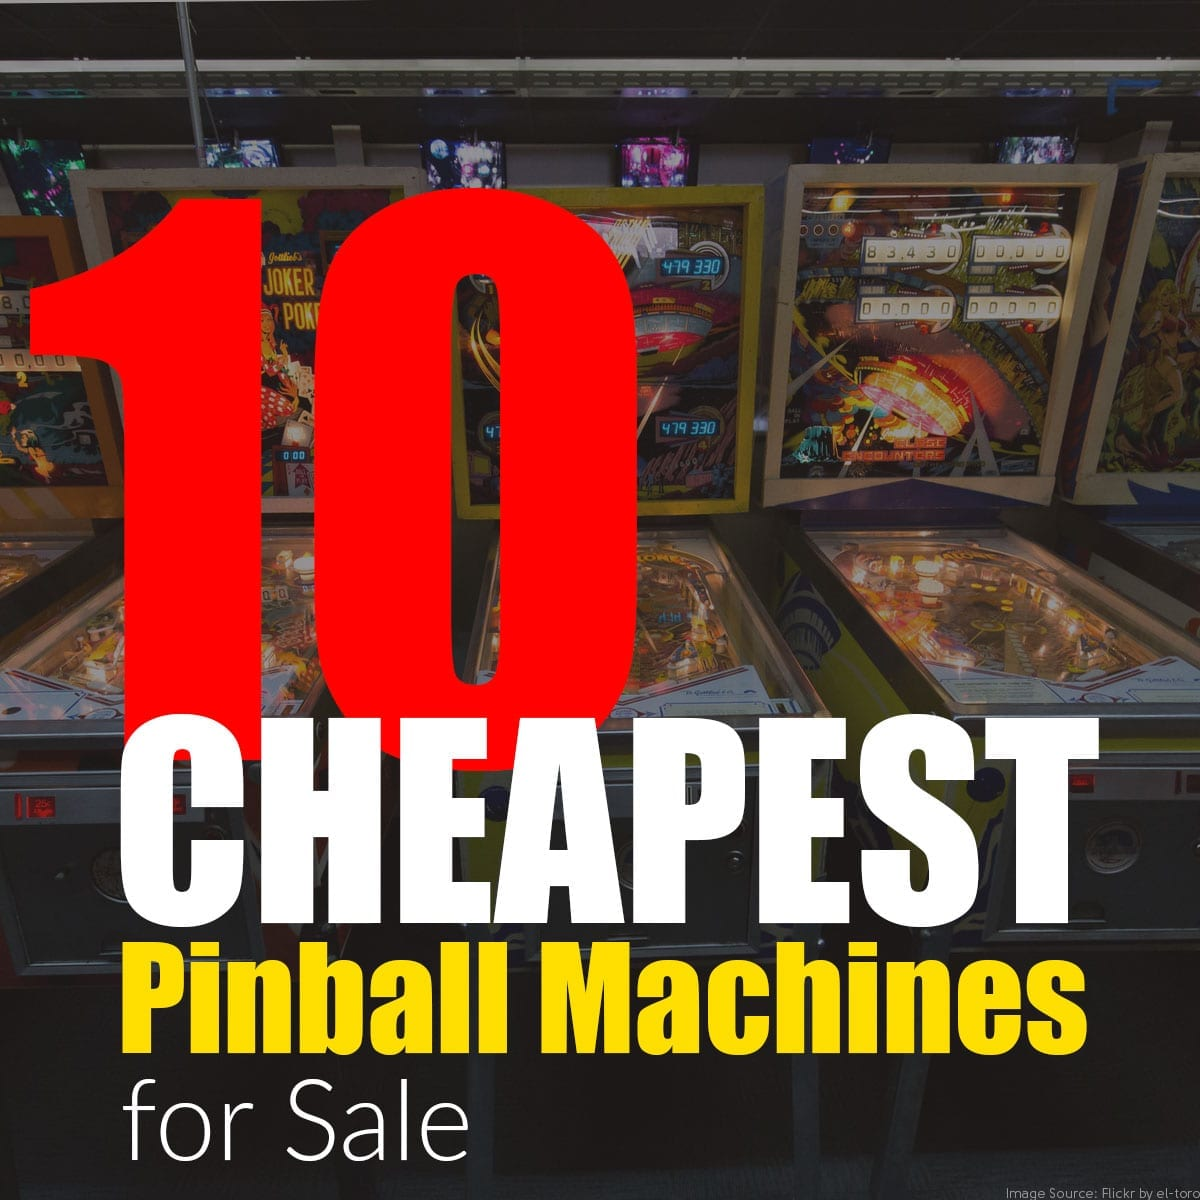 10 Cheapest Pinball Machines for Sale – Pinball Sales